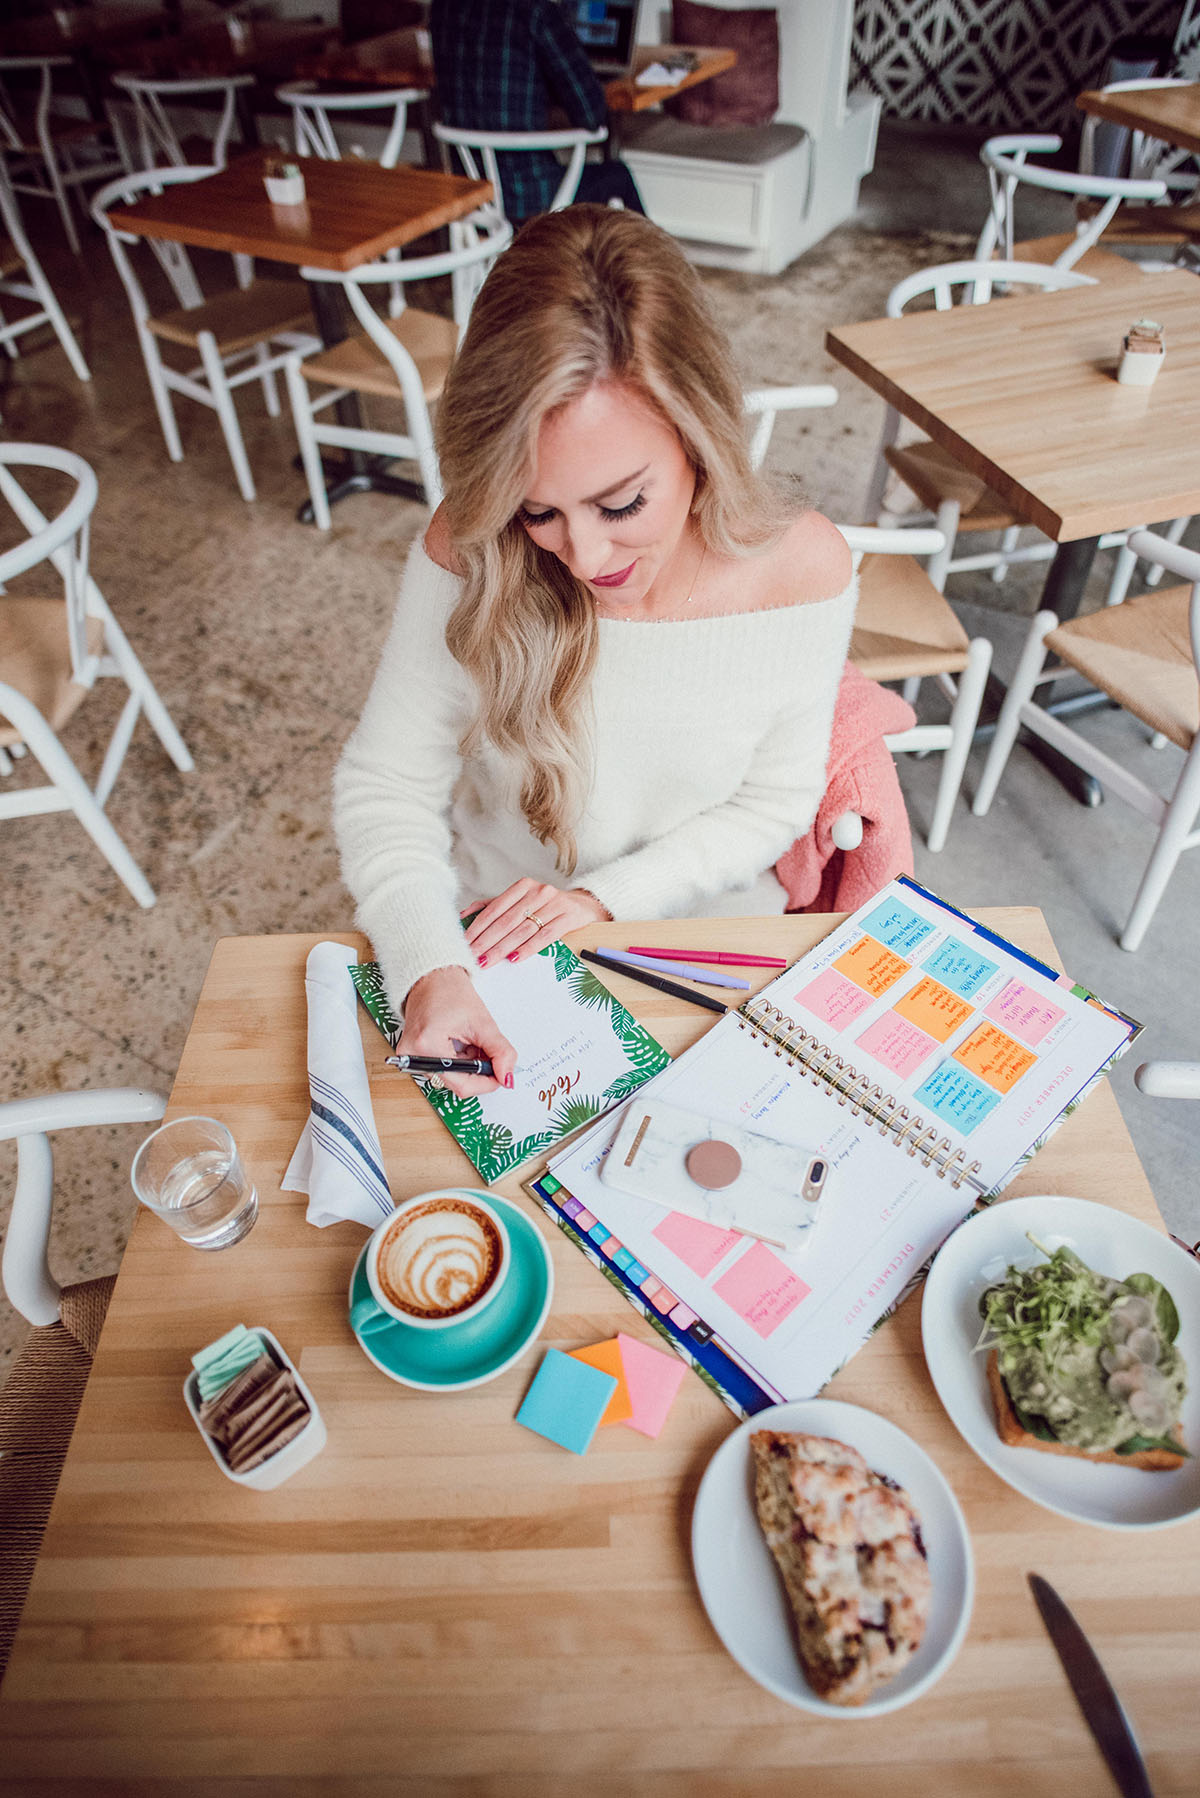 3 Lessons as a Female Entrepreneur